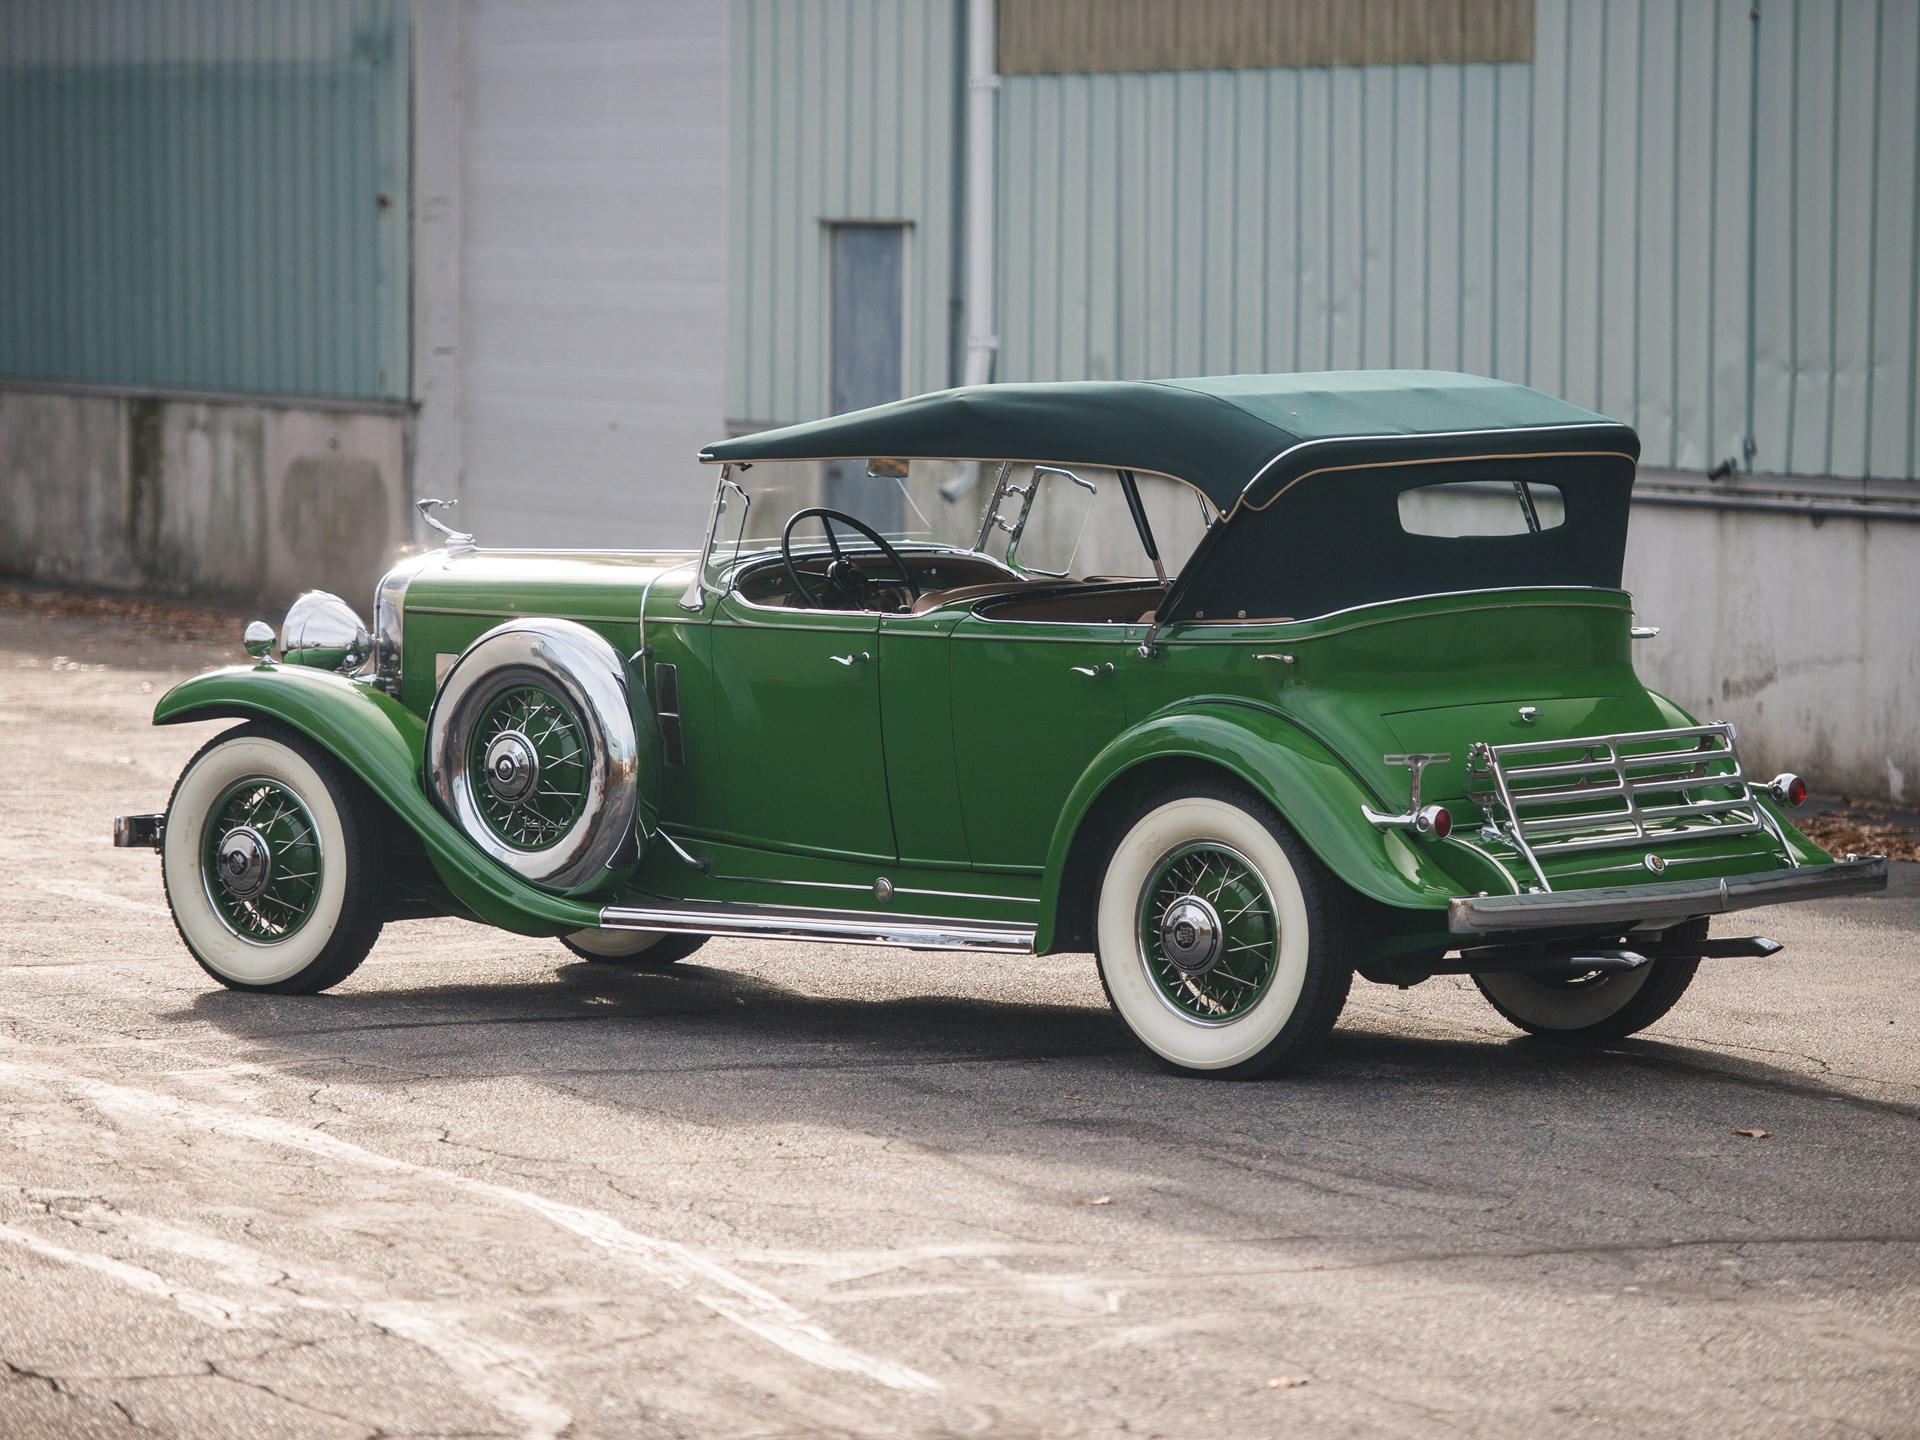 1931 Cadillac V-12 Phaeton in the style of Fleetwood